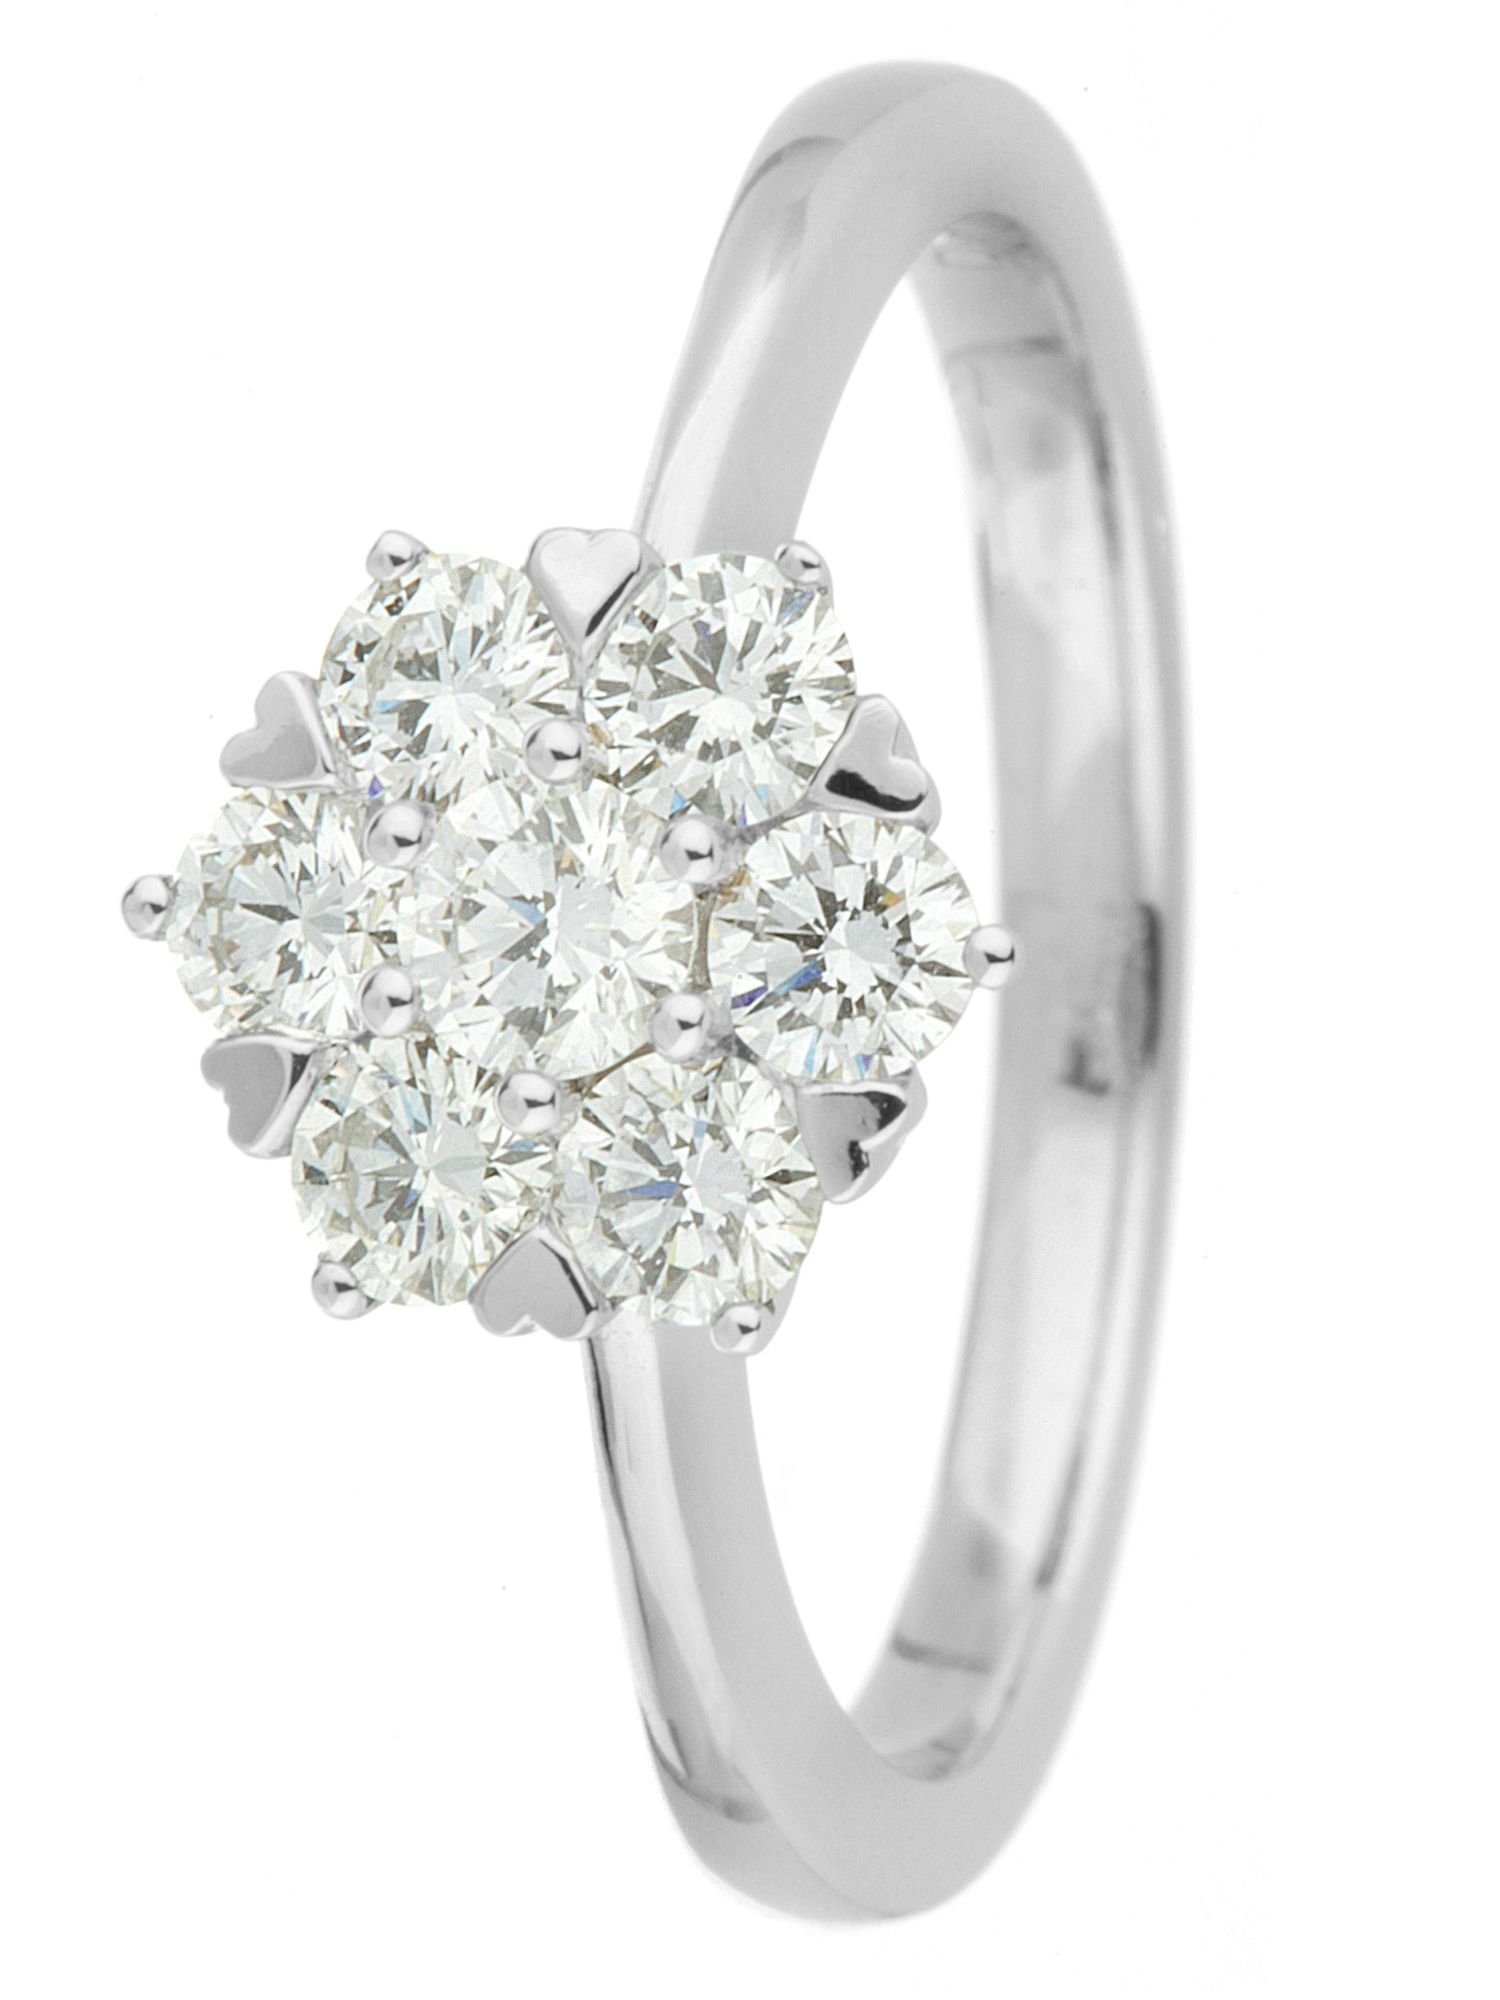 Goldsmiths 18ct gold 0.75ct diamond cluster ring, White Gold